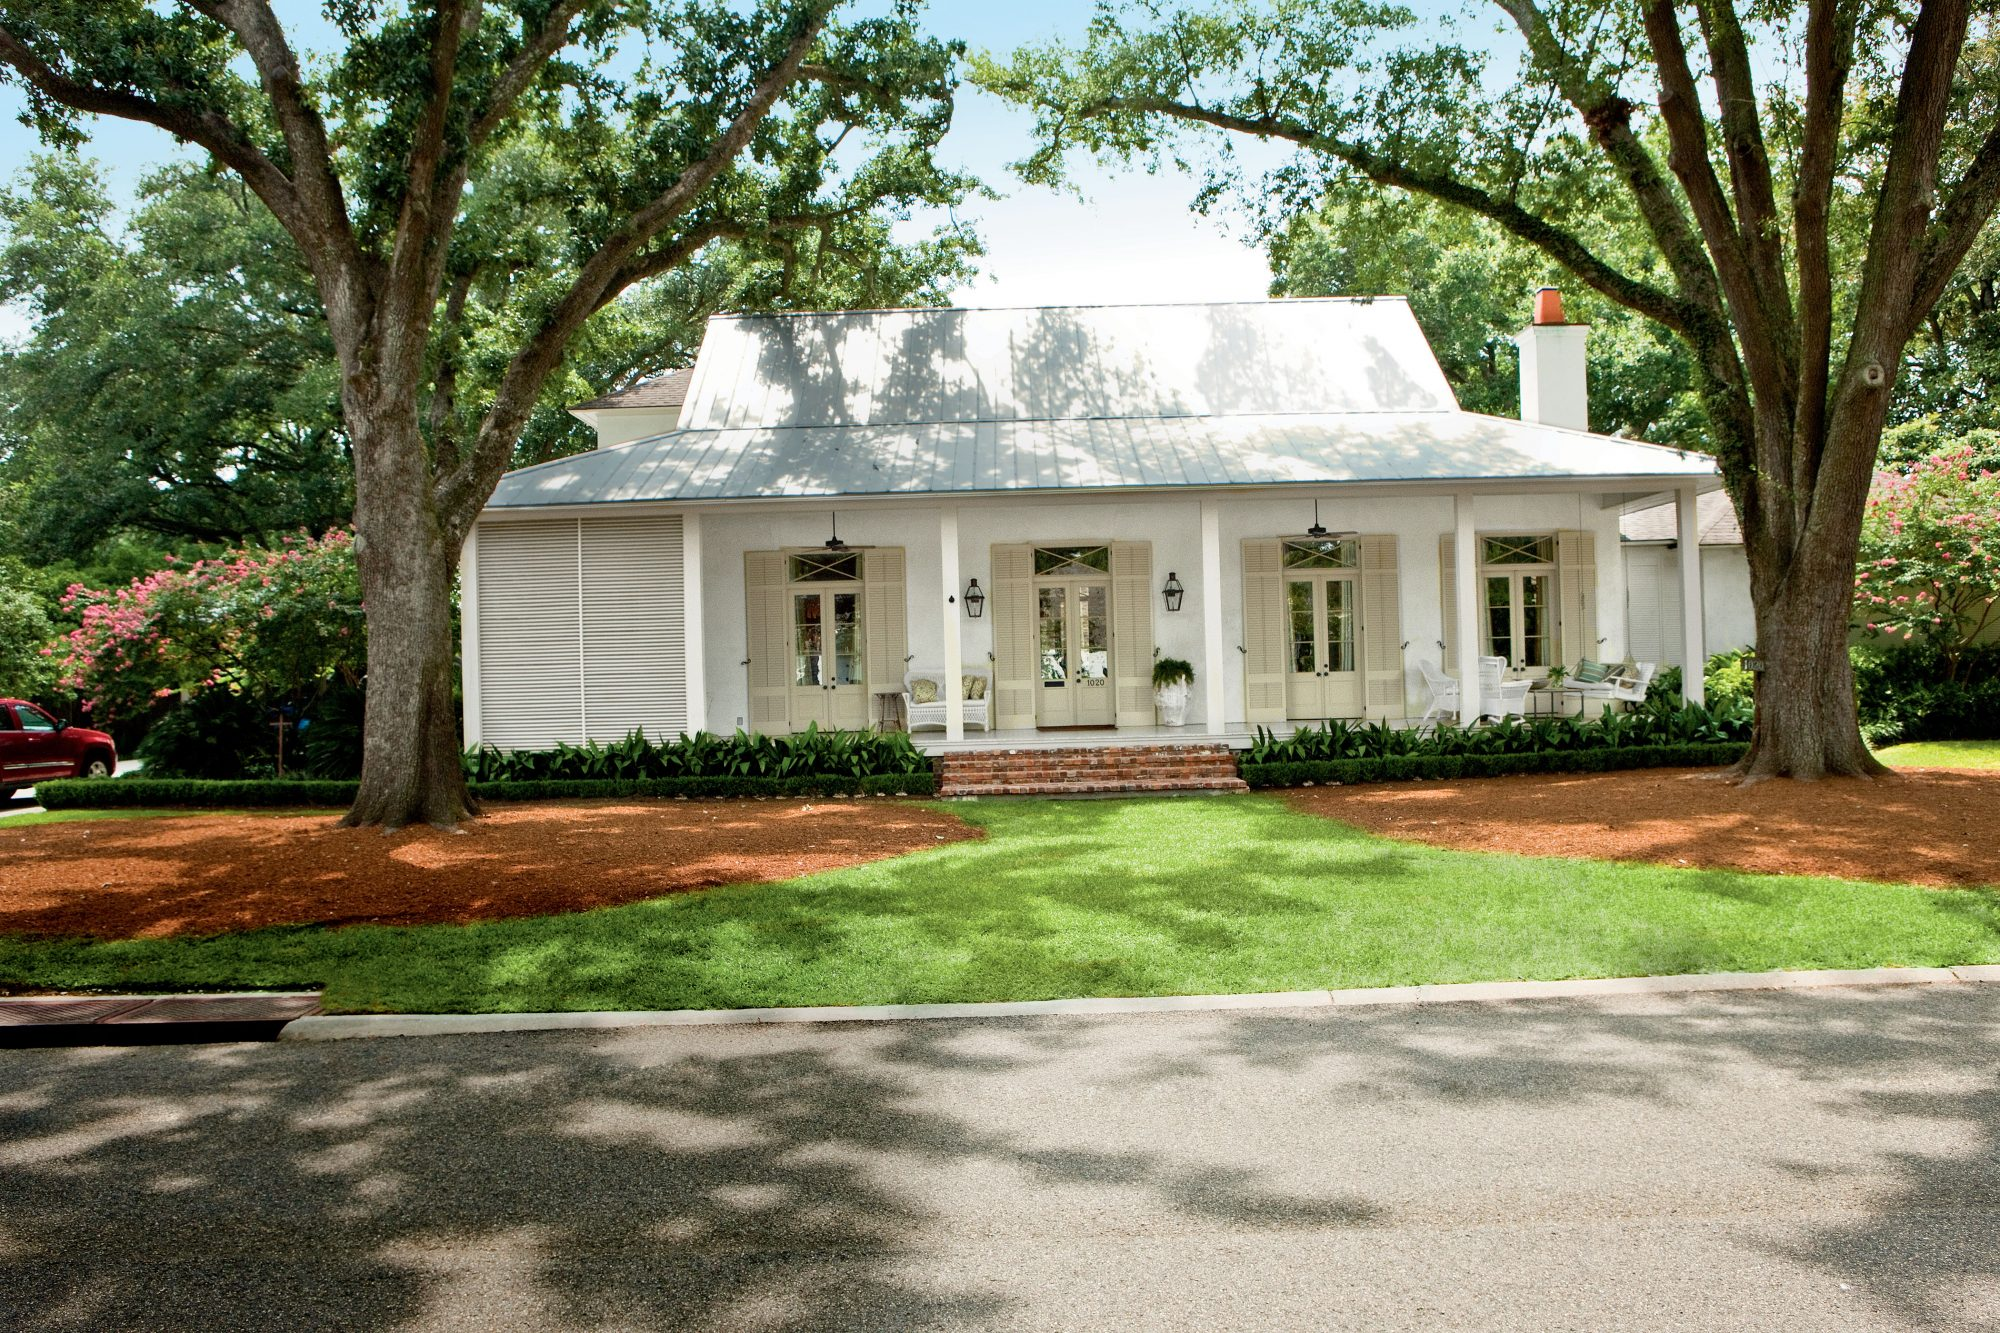 Charming Home Exteriors on townhome exterior design ideas, ranch home interior ideas, ranch home lighting, exterior house paint color ideas, ranch home bathroom ideas, ranch home kitchen ideas, fireplace exterior design ideas, ranch home bedroom, strip mall exterior design ideas, ranch garage addition ideas, rambler exterior design ideas, exterior front entrance design ideas, large ranch home exterior ideas, ranch house exterior remodel, mobile home landscaping ideas, townhouse exterior design ideas, exterior ranch remodel ideas, ranch exterior color ideas, ranch landscaping design ideas, ranch home entryway design ideas,